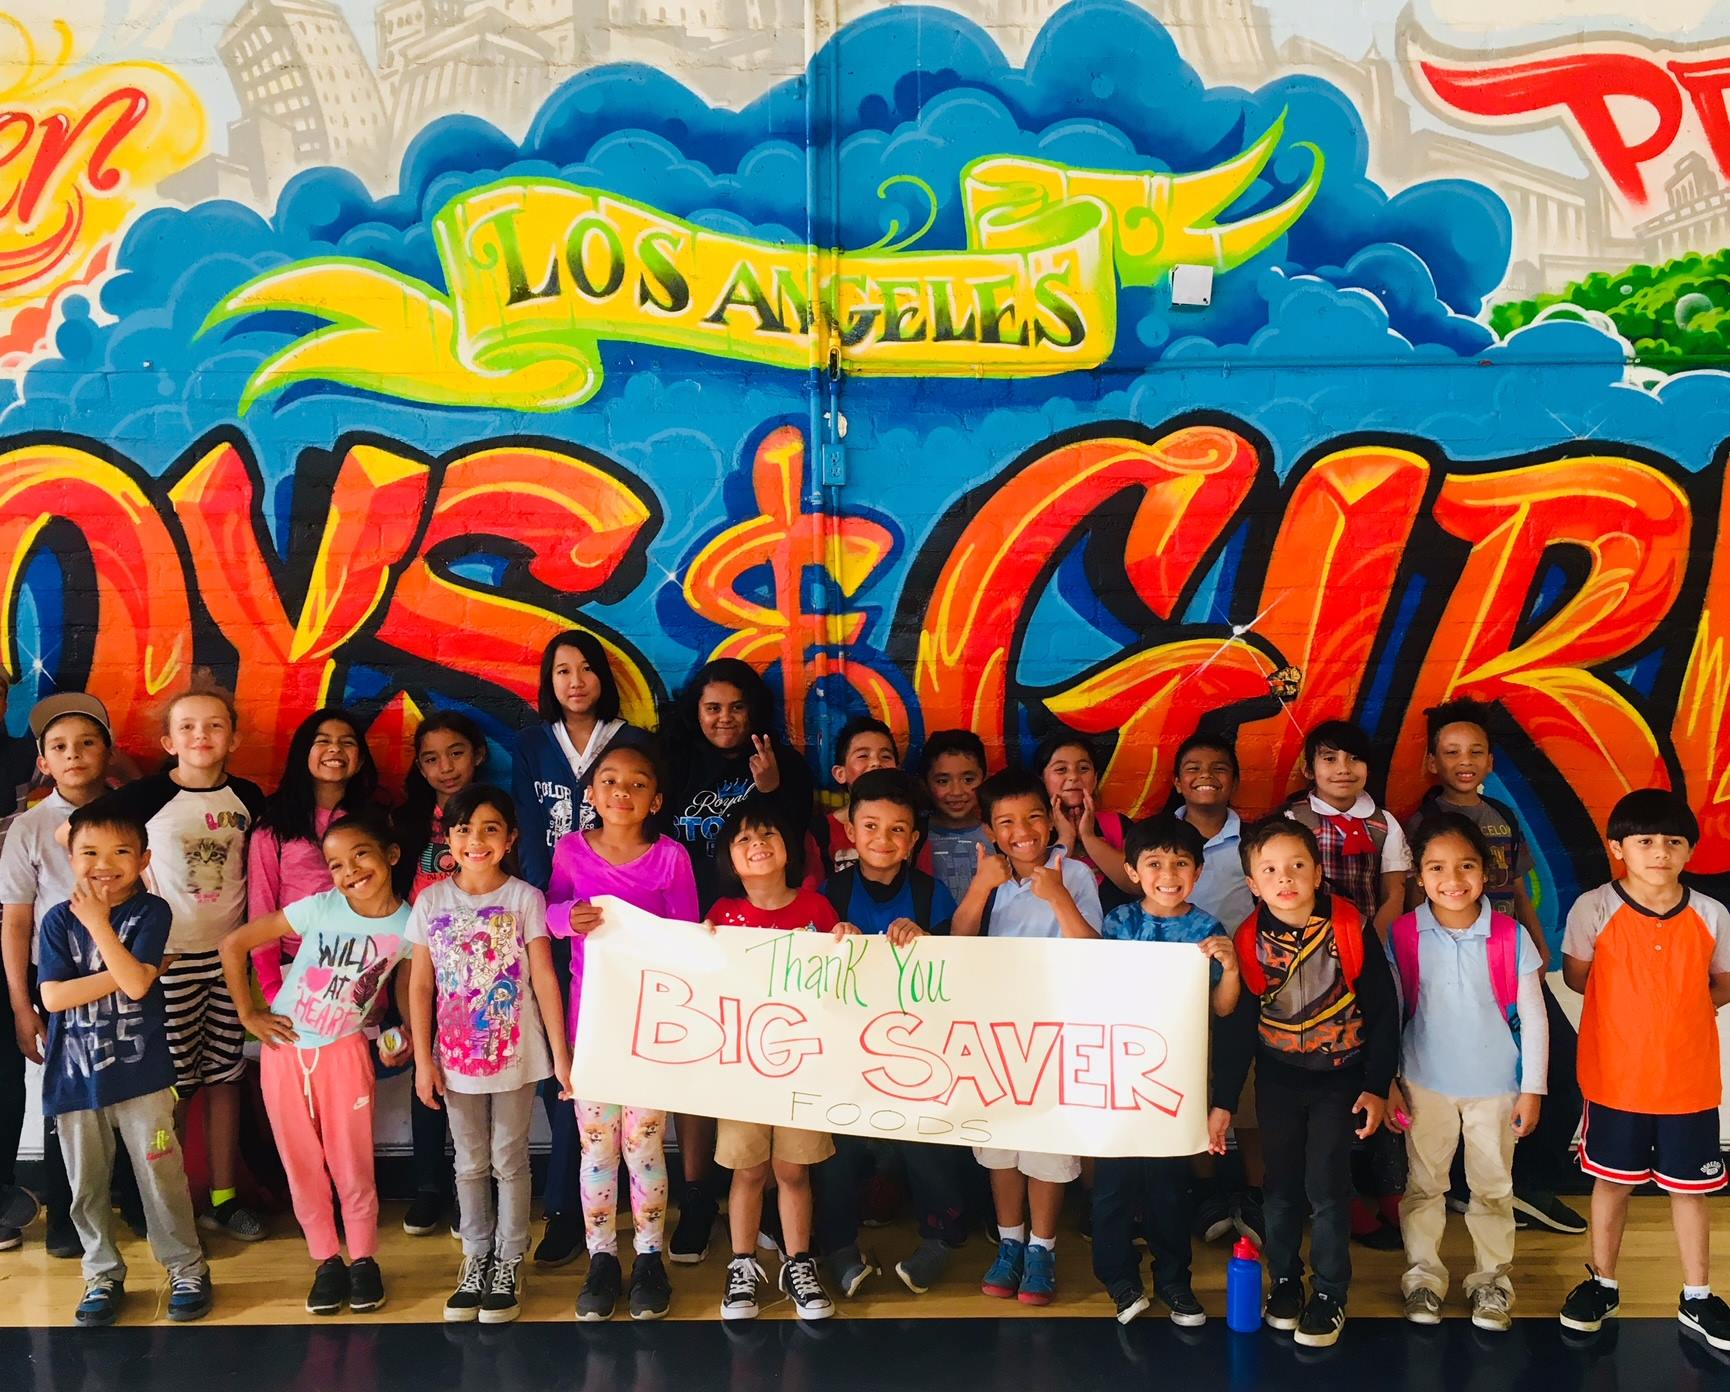 The Los Angeles Boys & Girls Club kids send a Big thank you to Big Saver Foods for being a part of the generous support within our community!